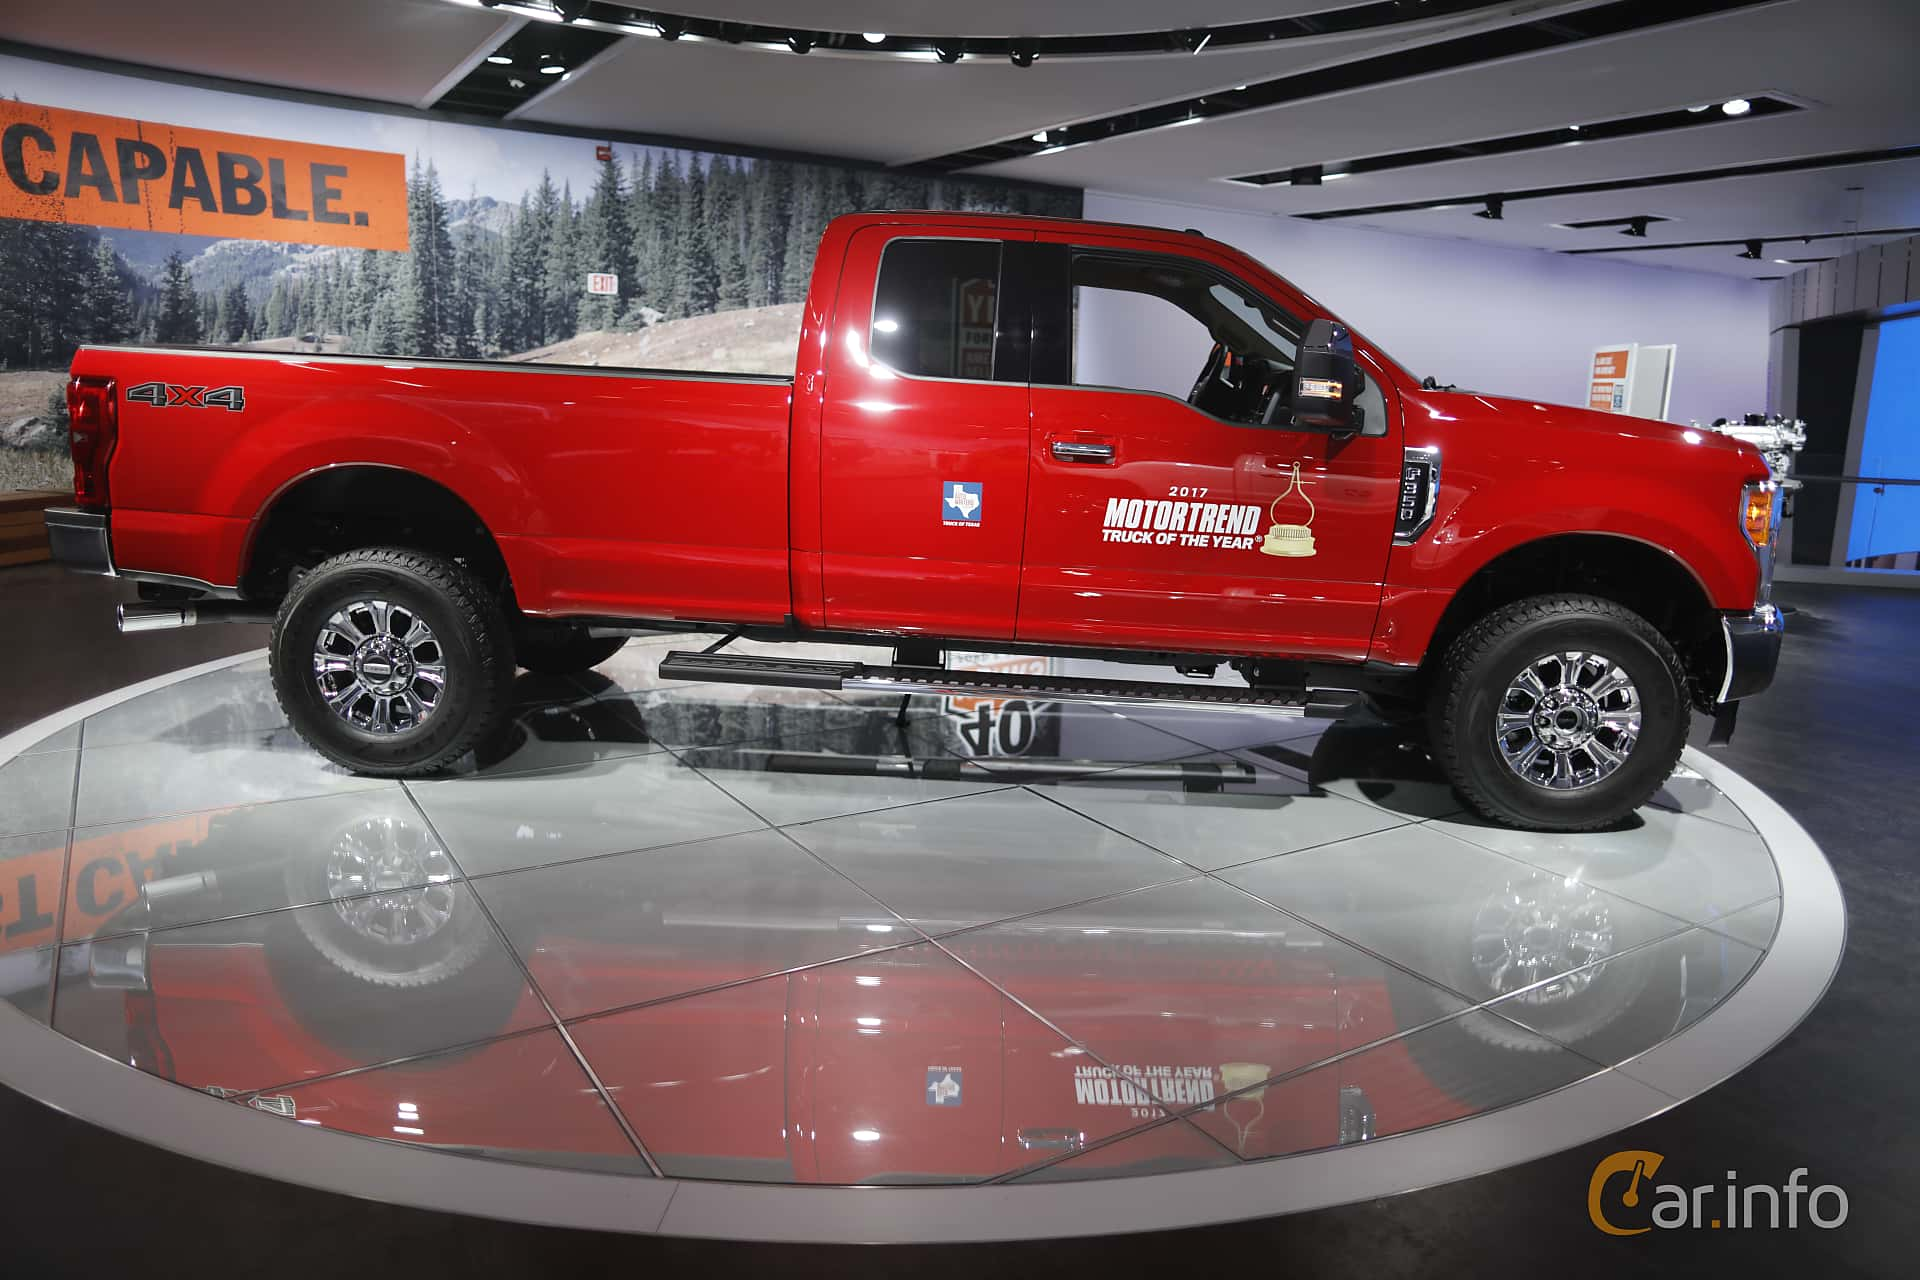 Ford F-350 SuperCab 6.2 V8 FFV 4x4 Automatic, 390hp, 2017 at North American International Auto Show 2017